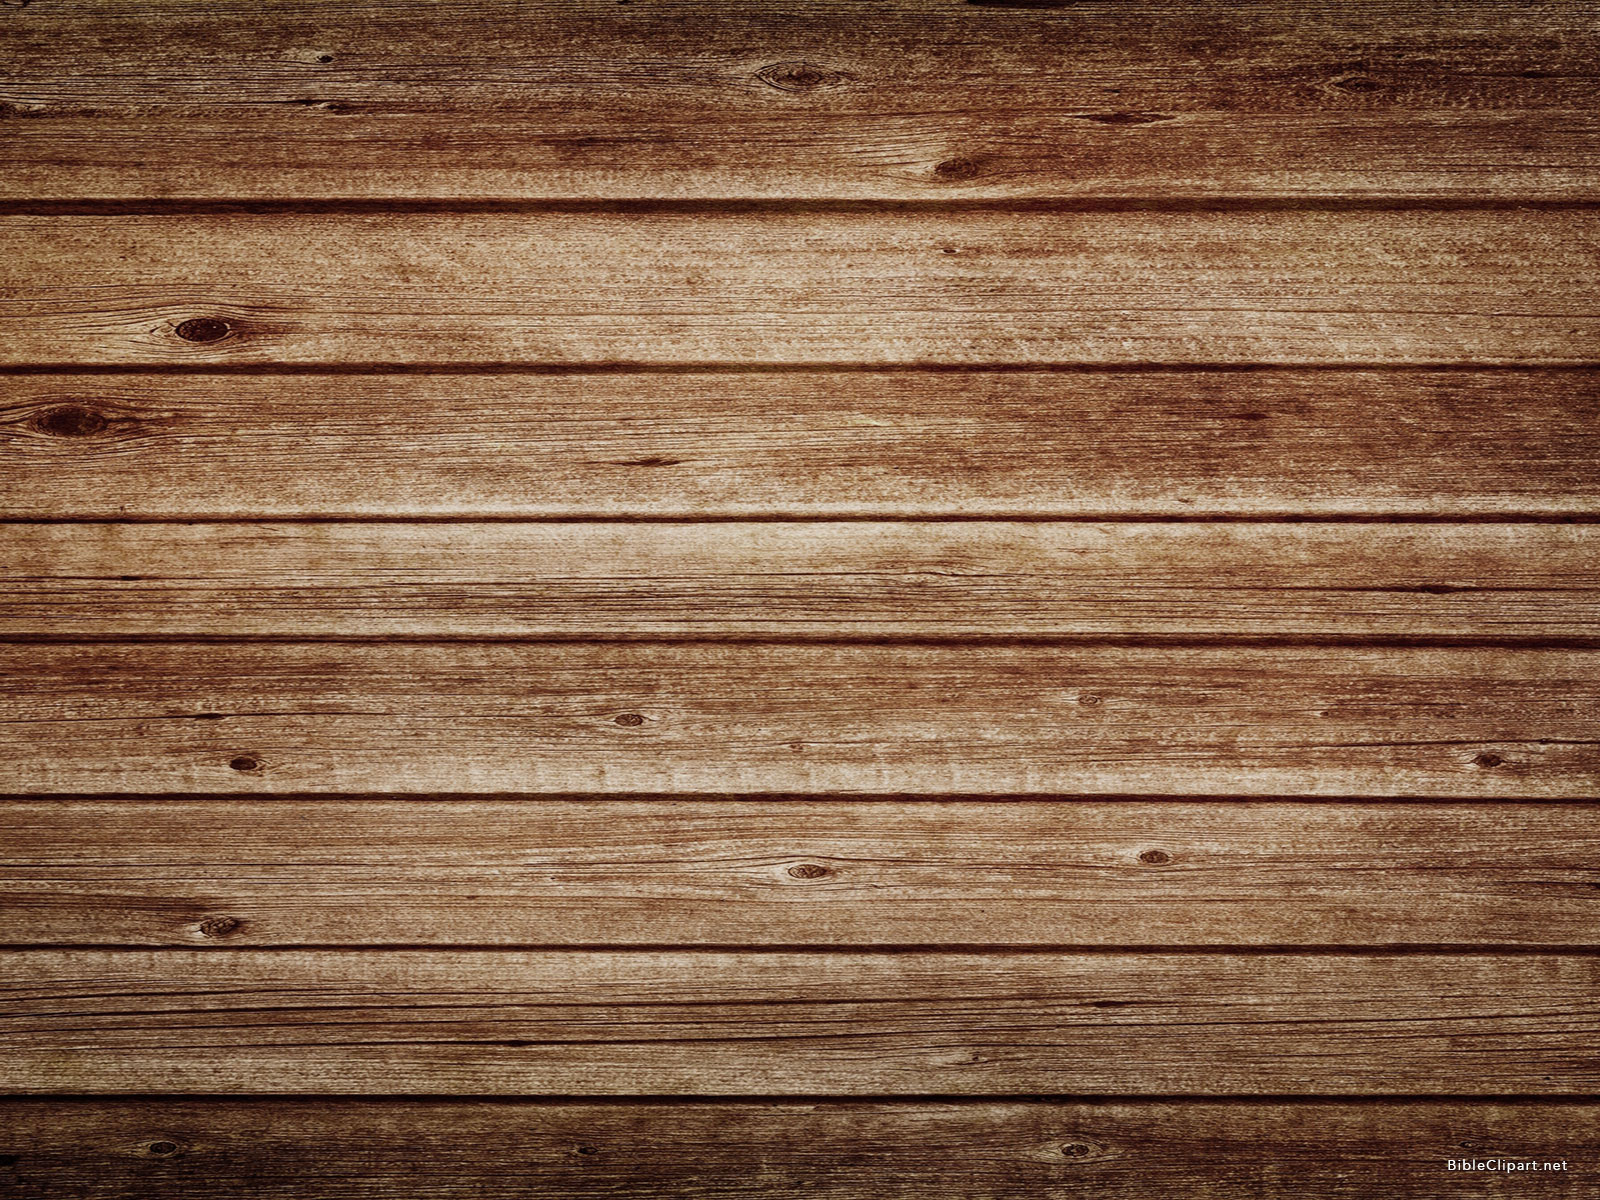 Wood panel hd background bible clipart How to cover old wood paneling